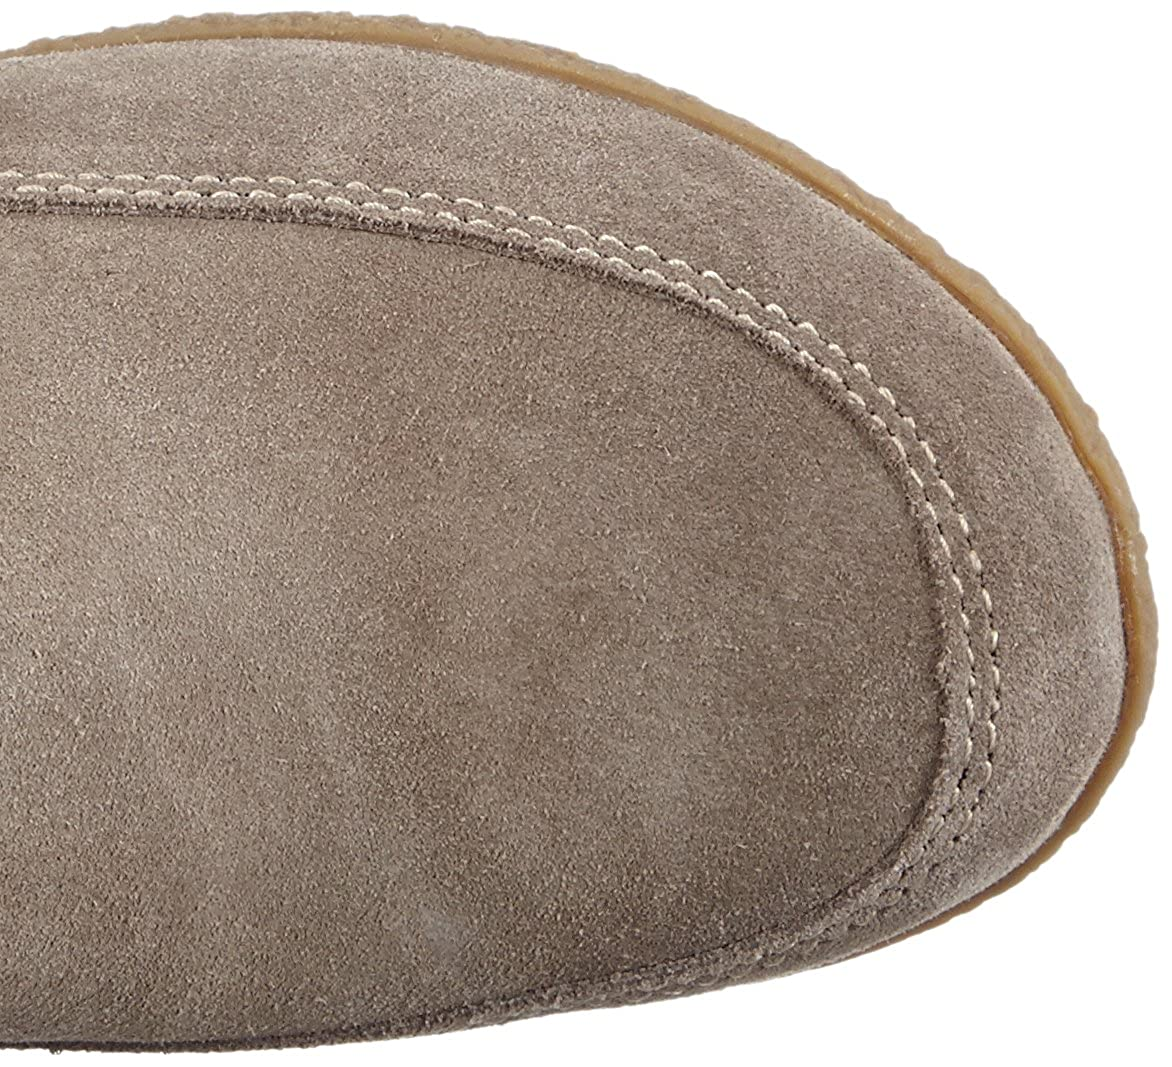 Allrounder by P2002614, Mephisto GESA P2002614, by Stivali classici Donna Marrone Braun Taupe C.suede 37)) 557773